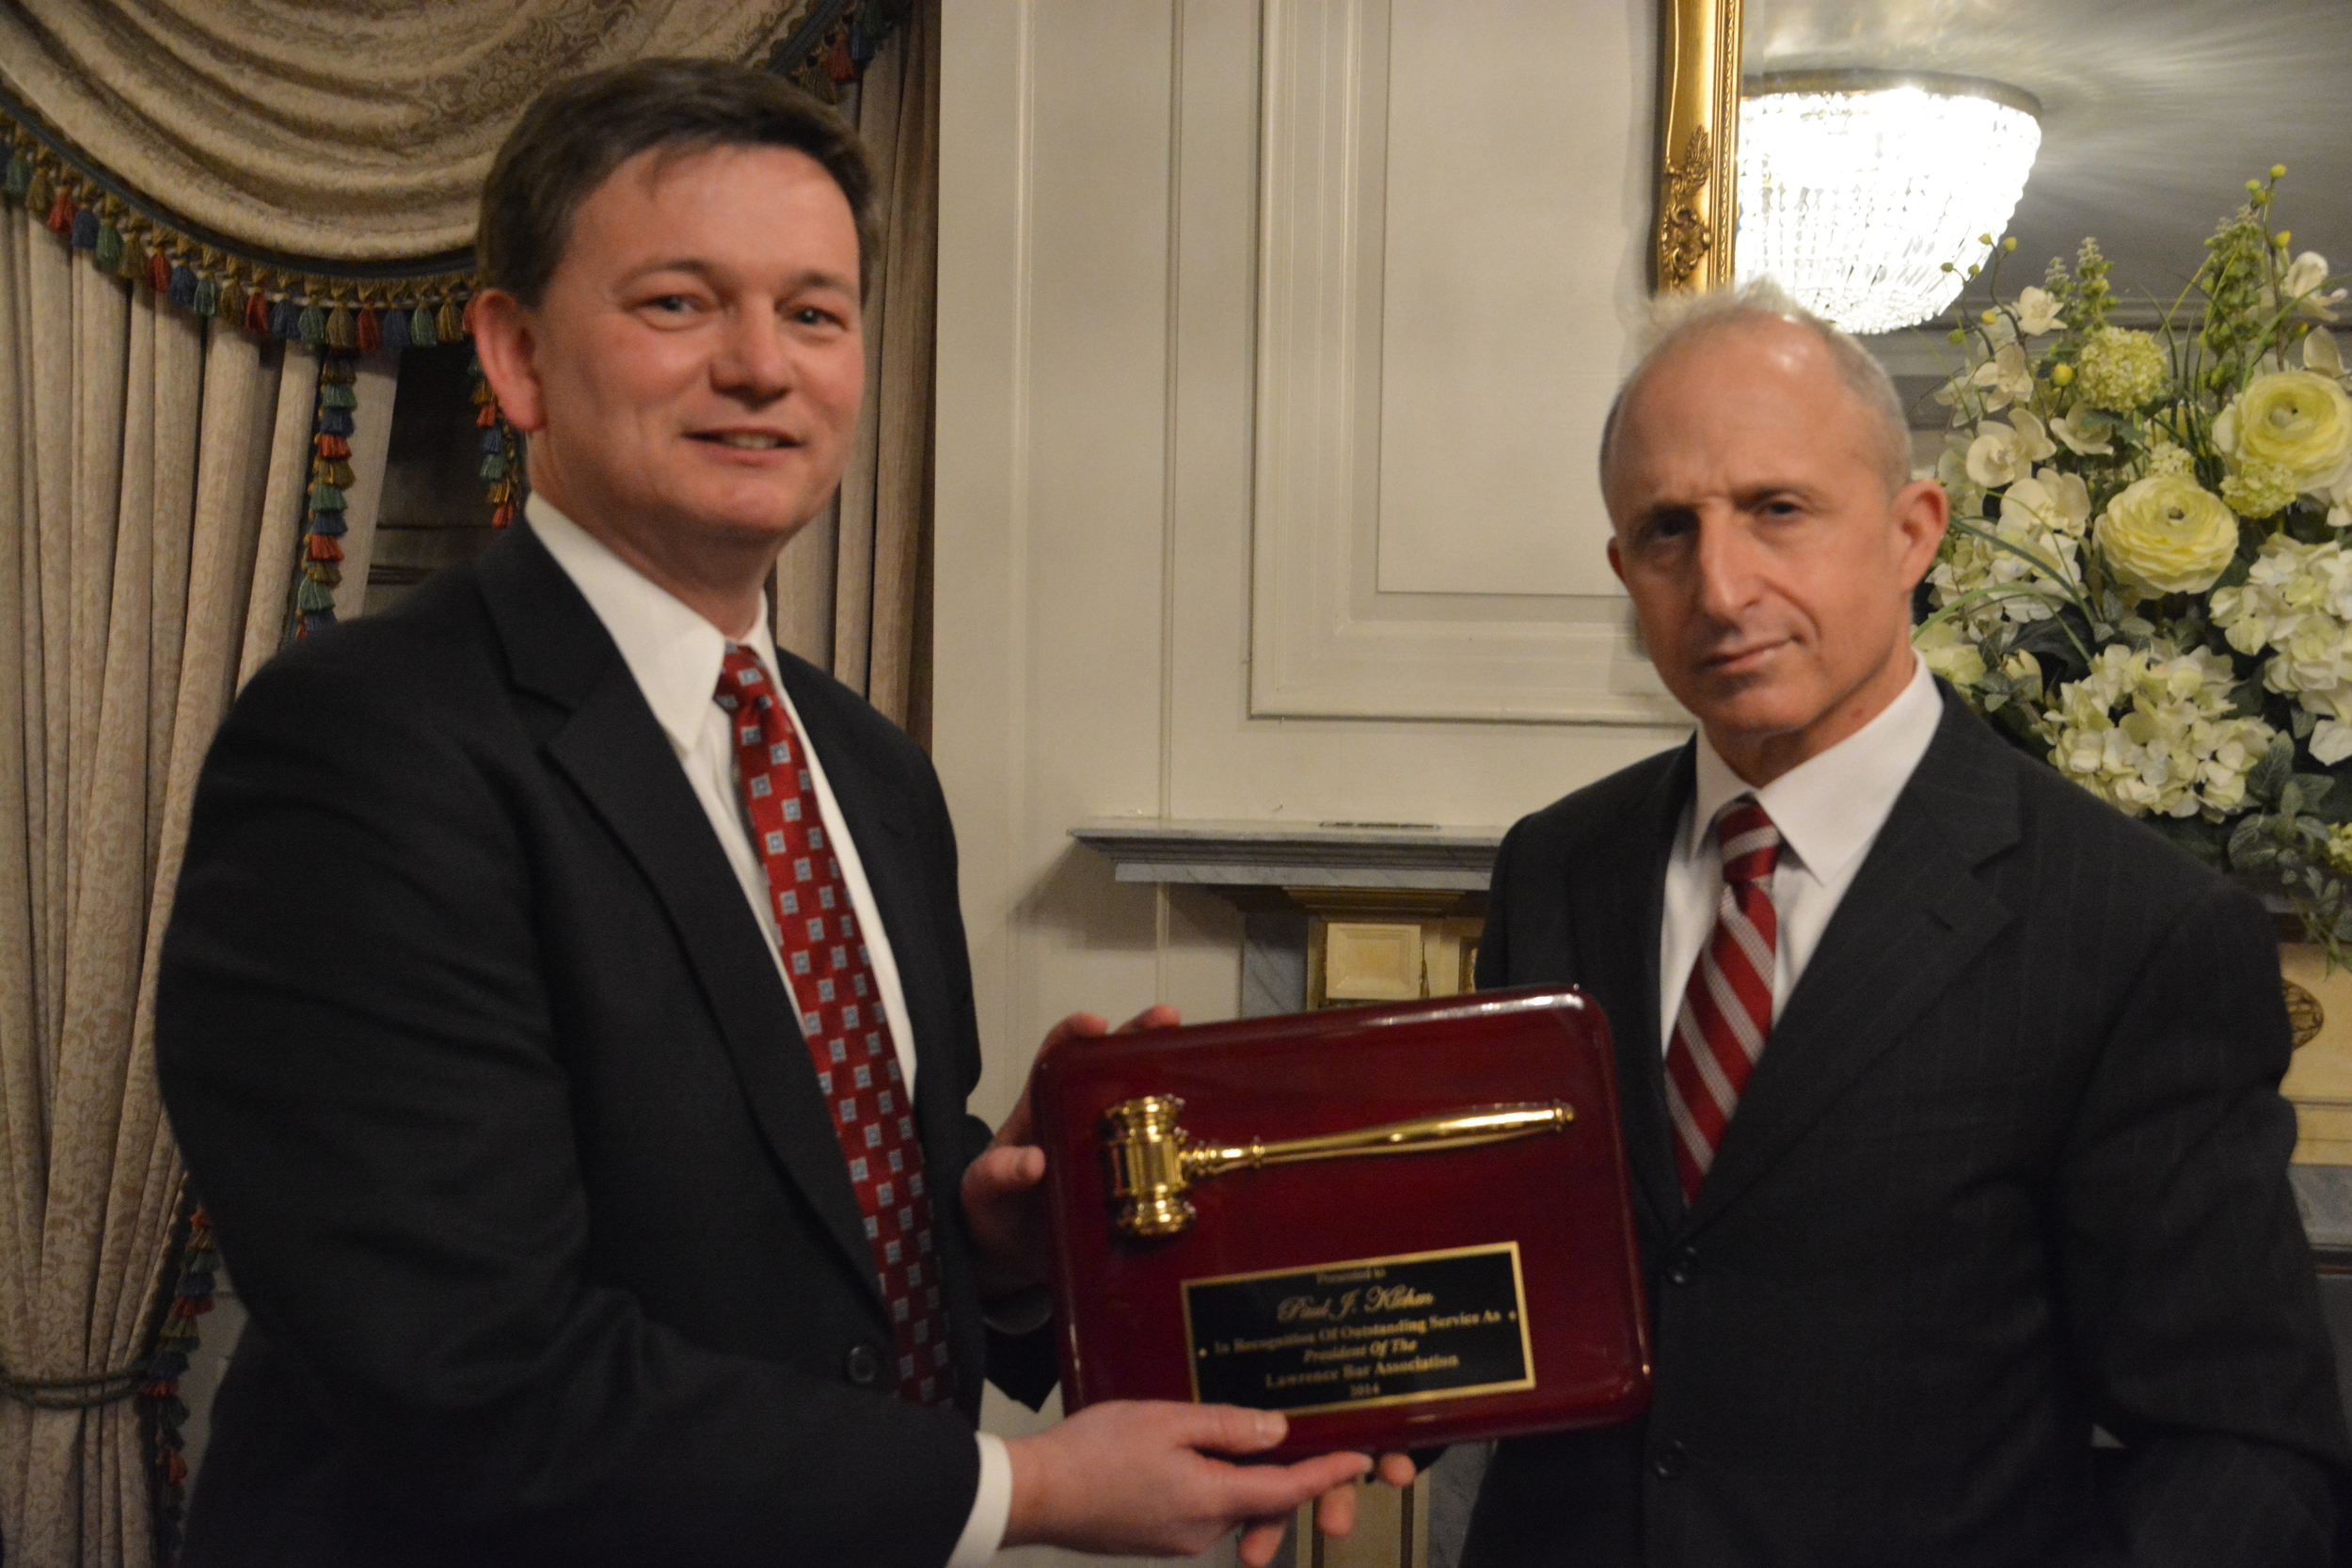 Outgoing President Paul Klehm receives the presidential plaque from the LBA's new president, Mark Machera.